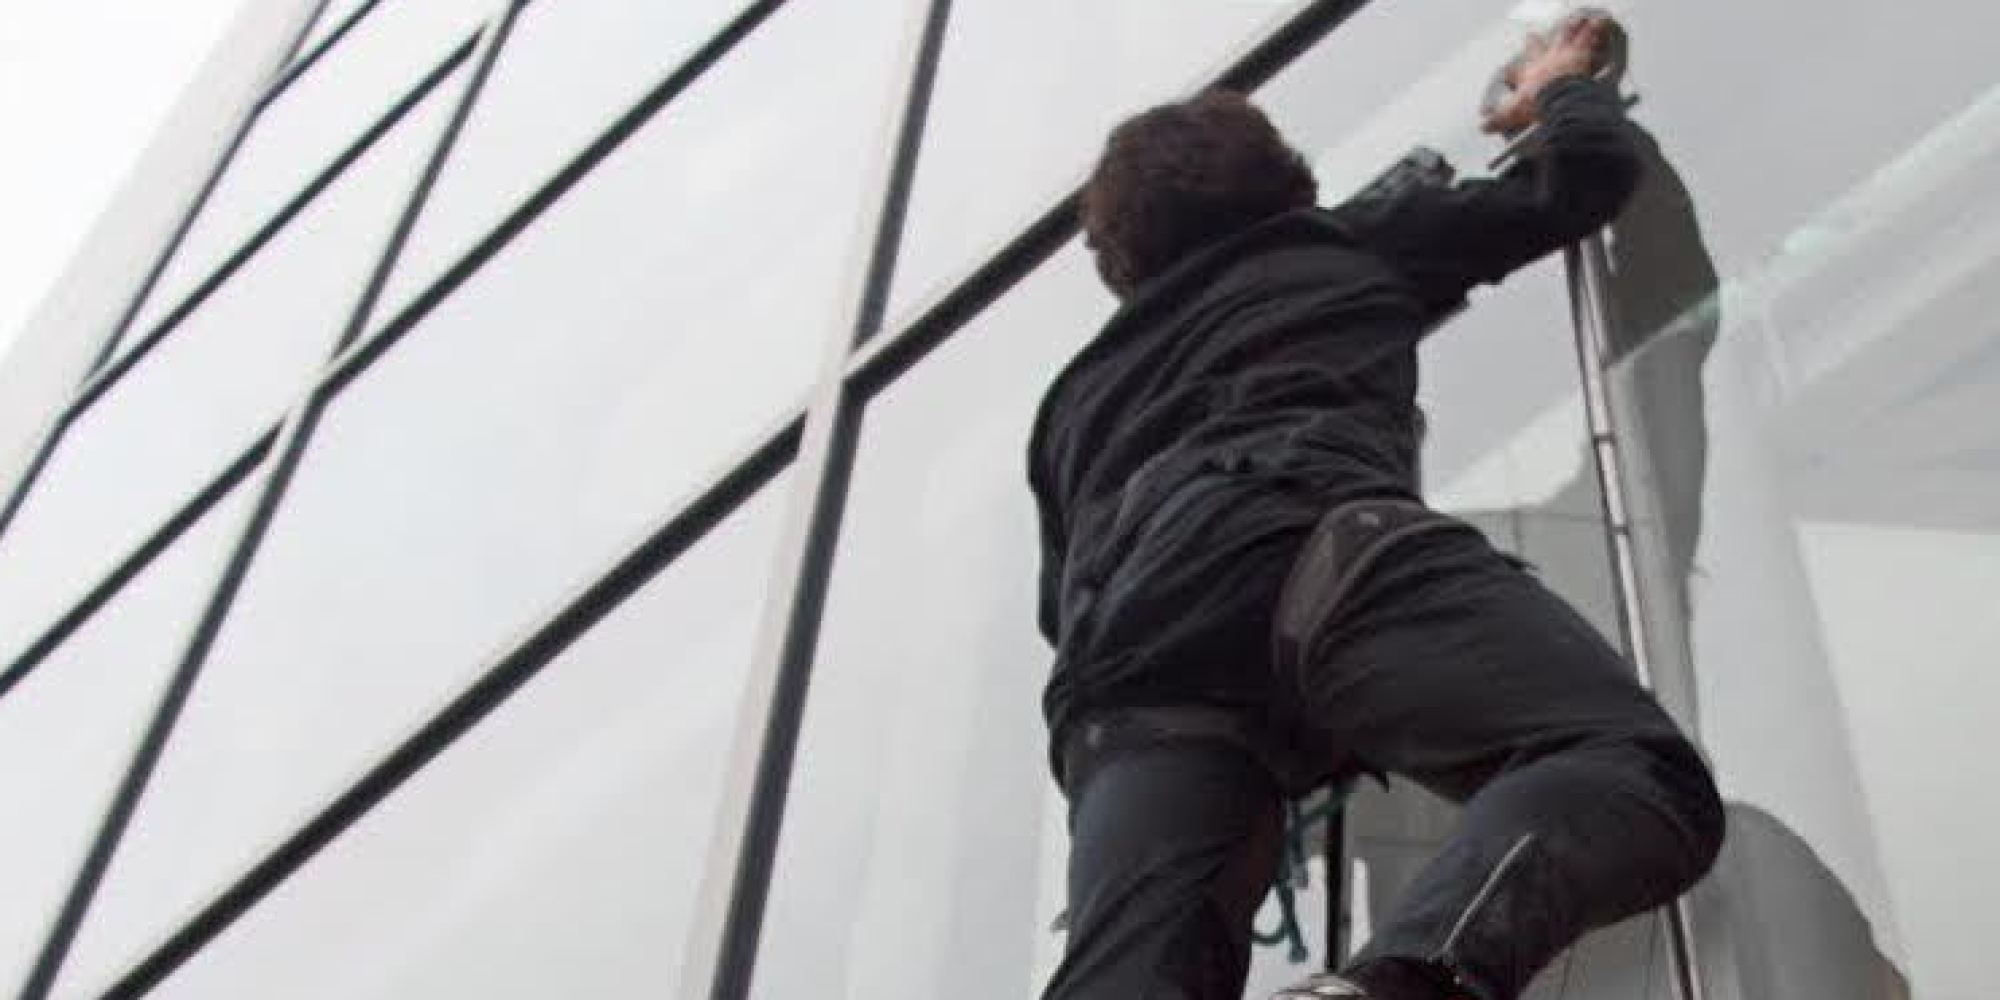 Scientists Figure Out How To Scale Walls Like Spider-Man | HuffPost